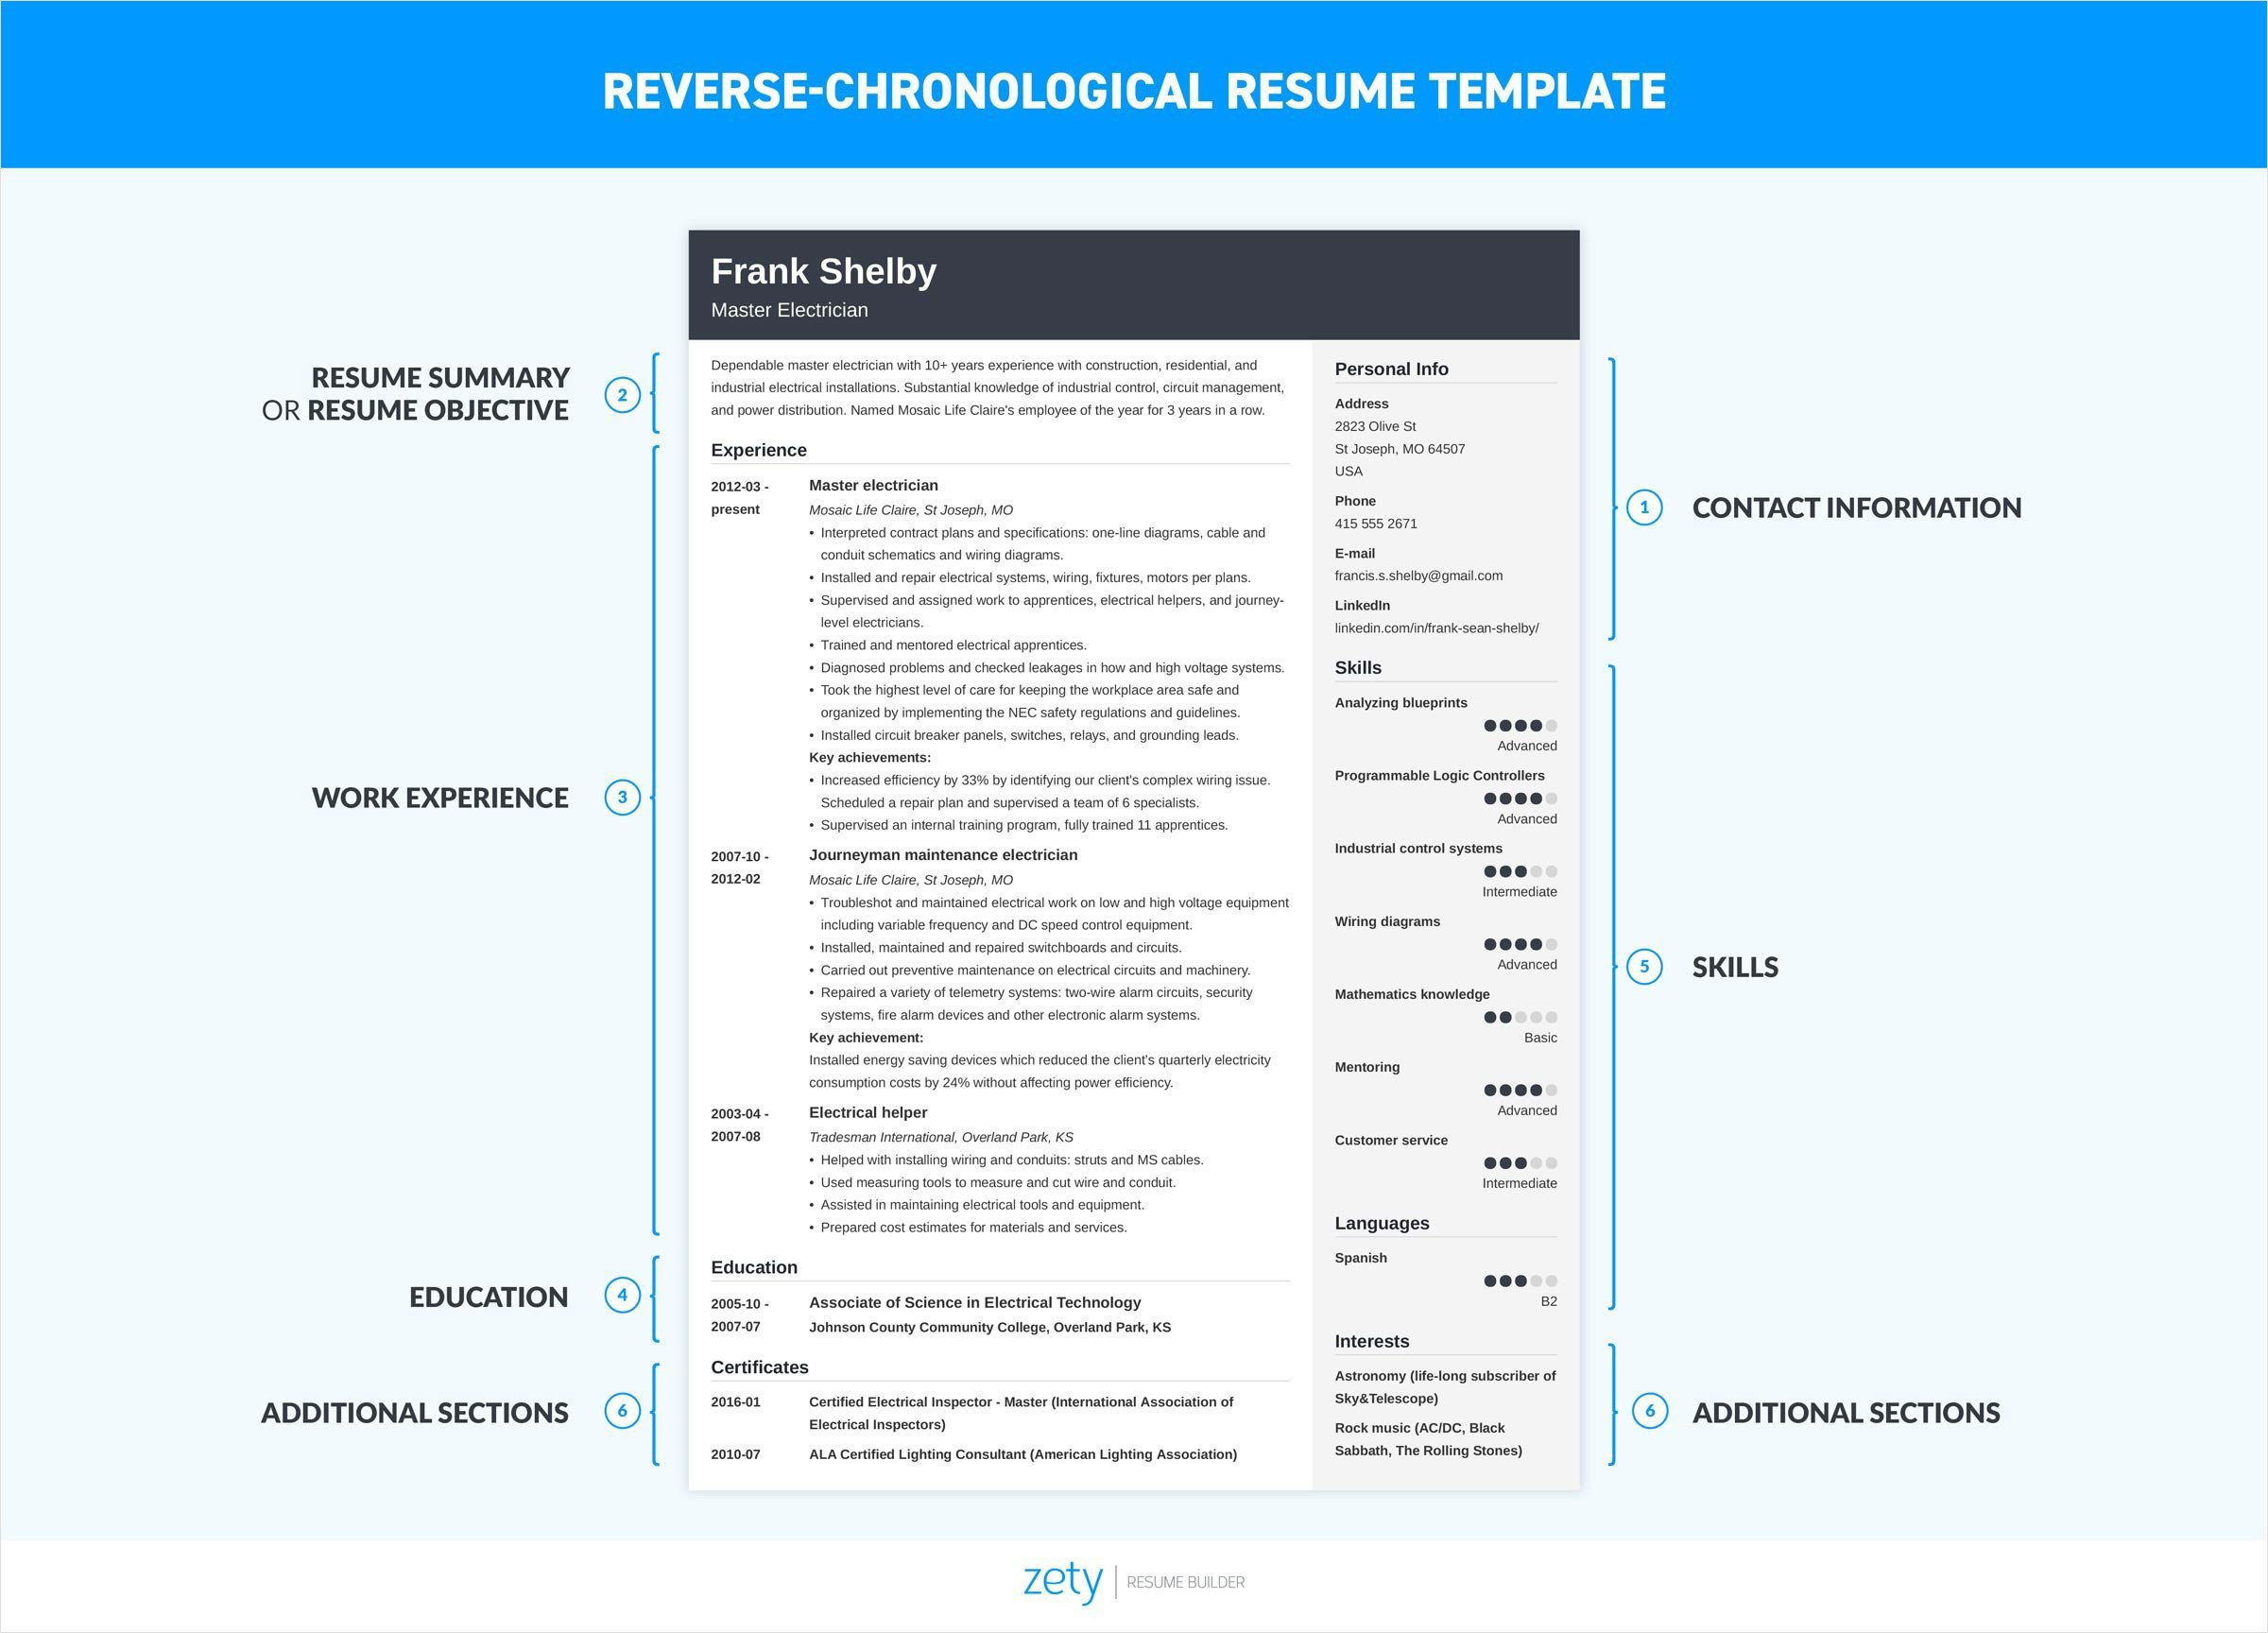 How To Make A Resume For A Job From Application To